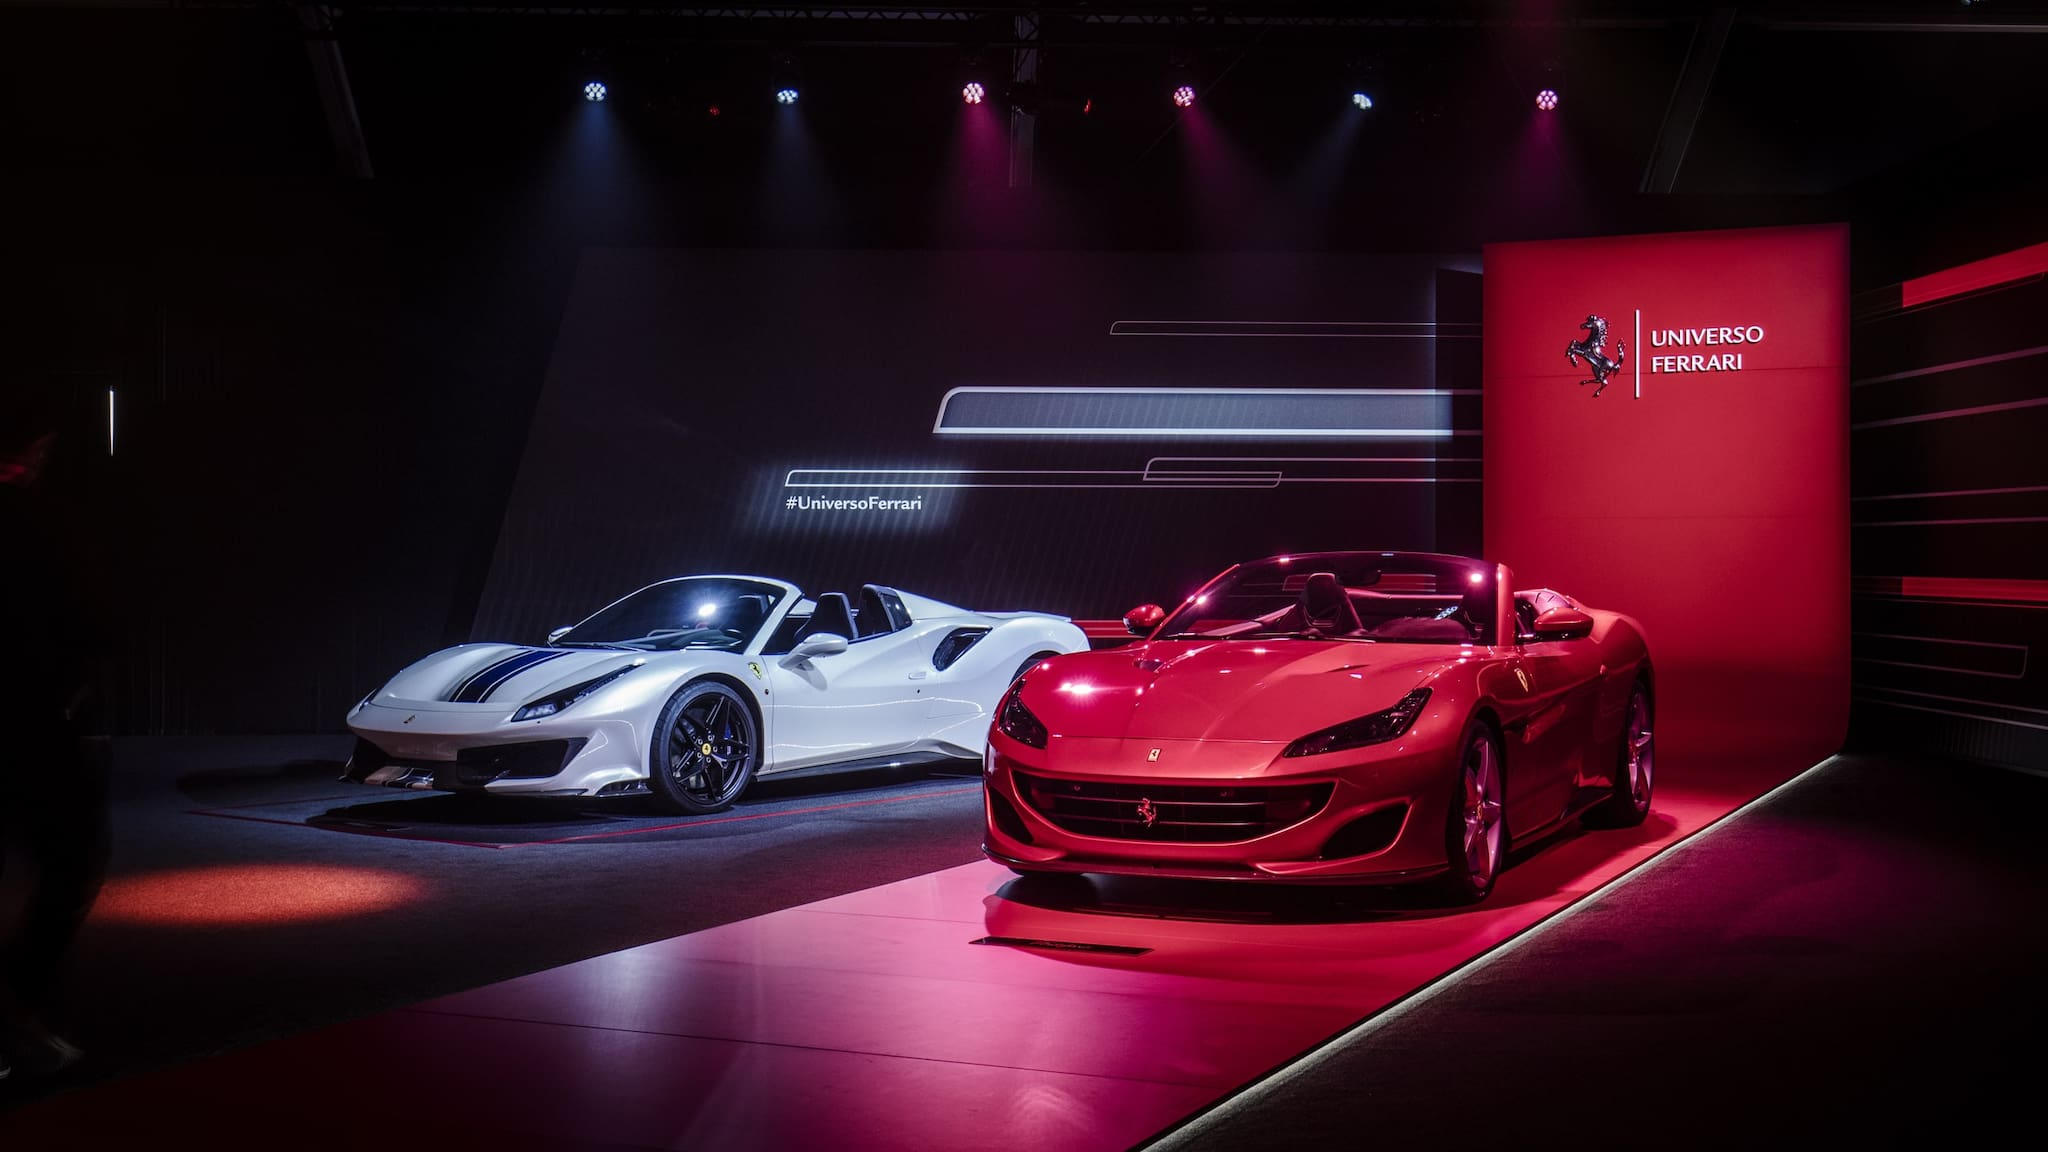 Over 14,000 Customers, Fans Visit Universo Ferrari